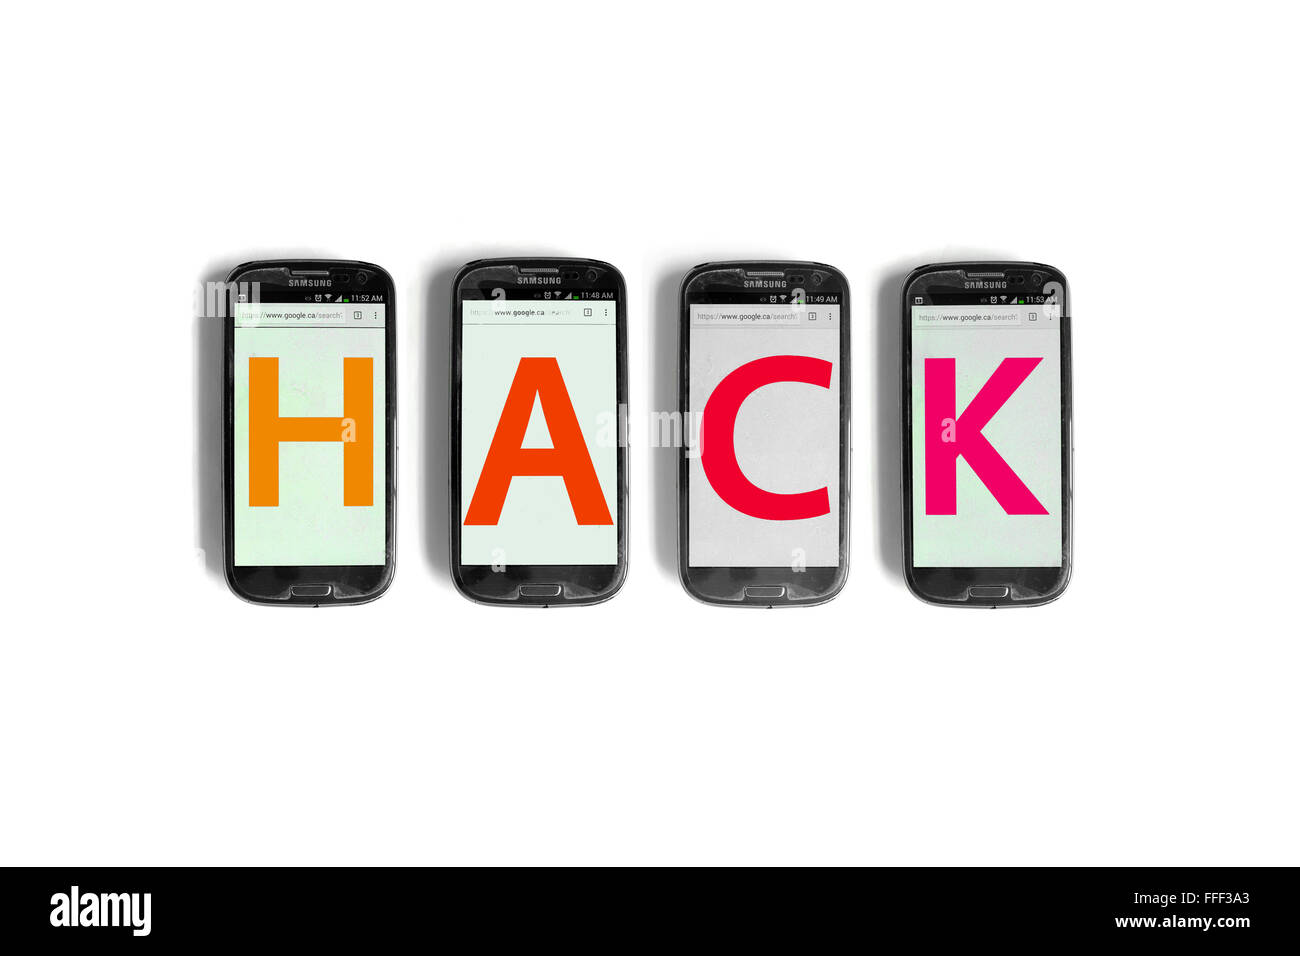 Hack Stock Photos & Hack Stock Images - Alamy